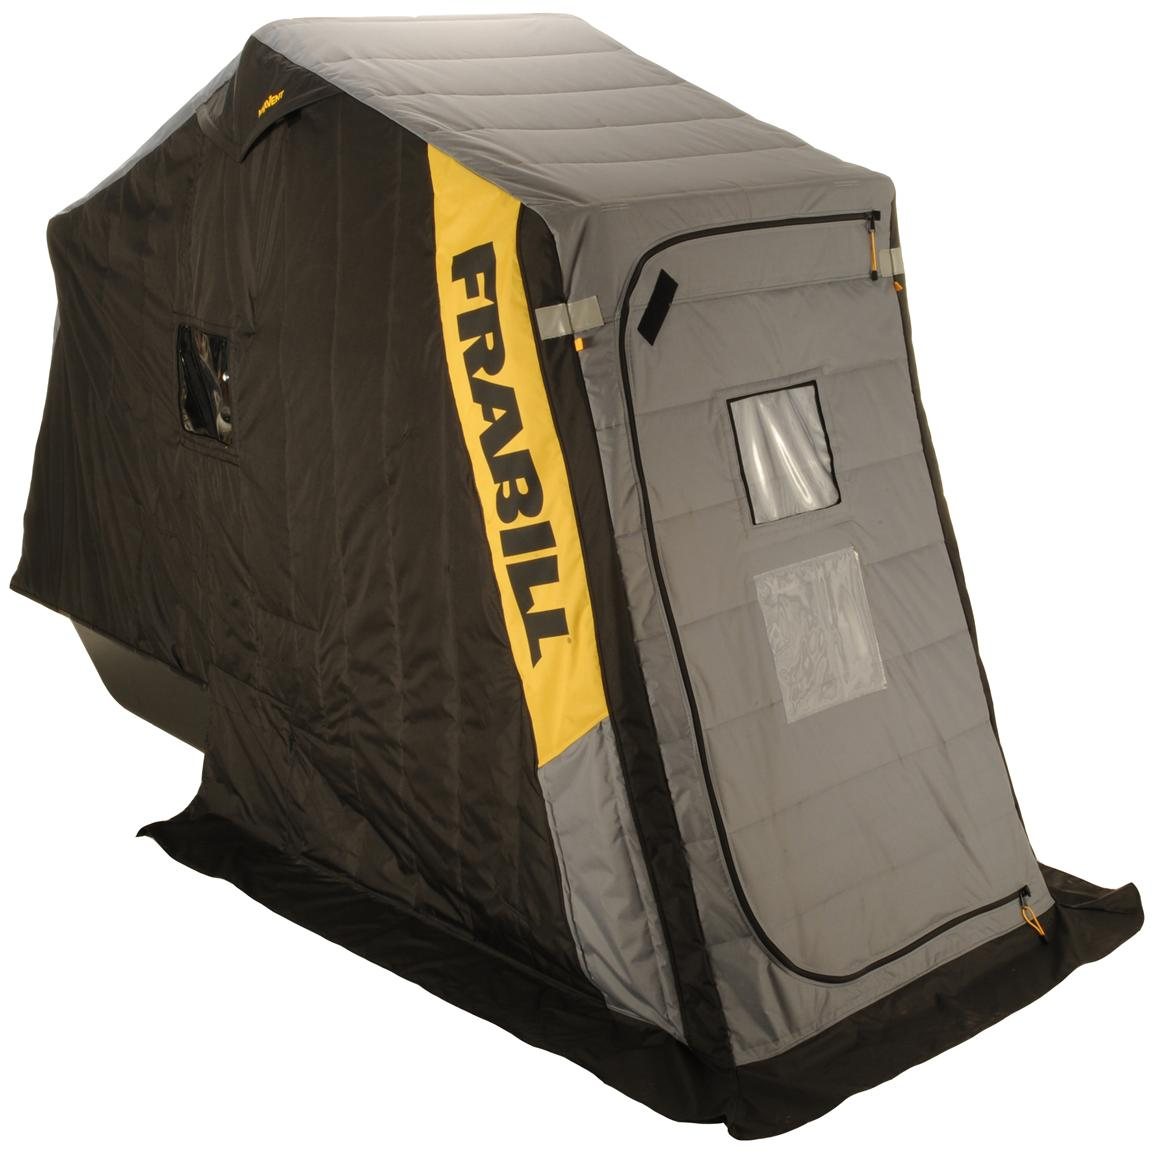 Frabill® R2-Tec Thermal Guardian Ice Shelter